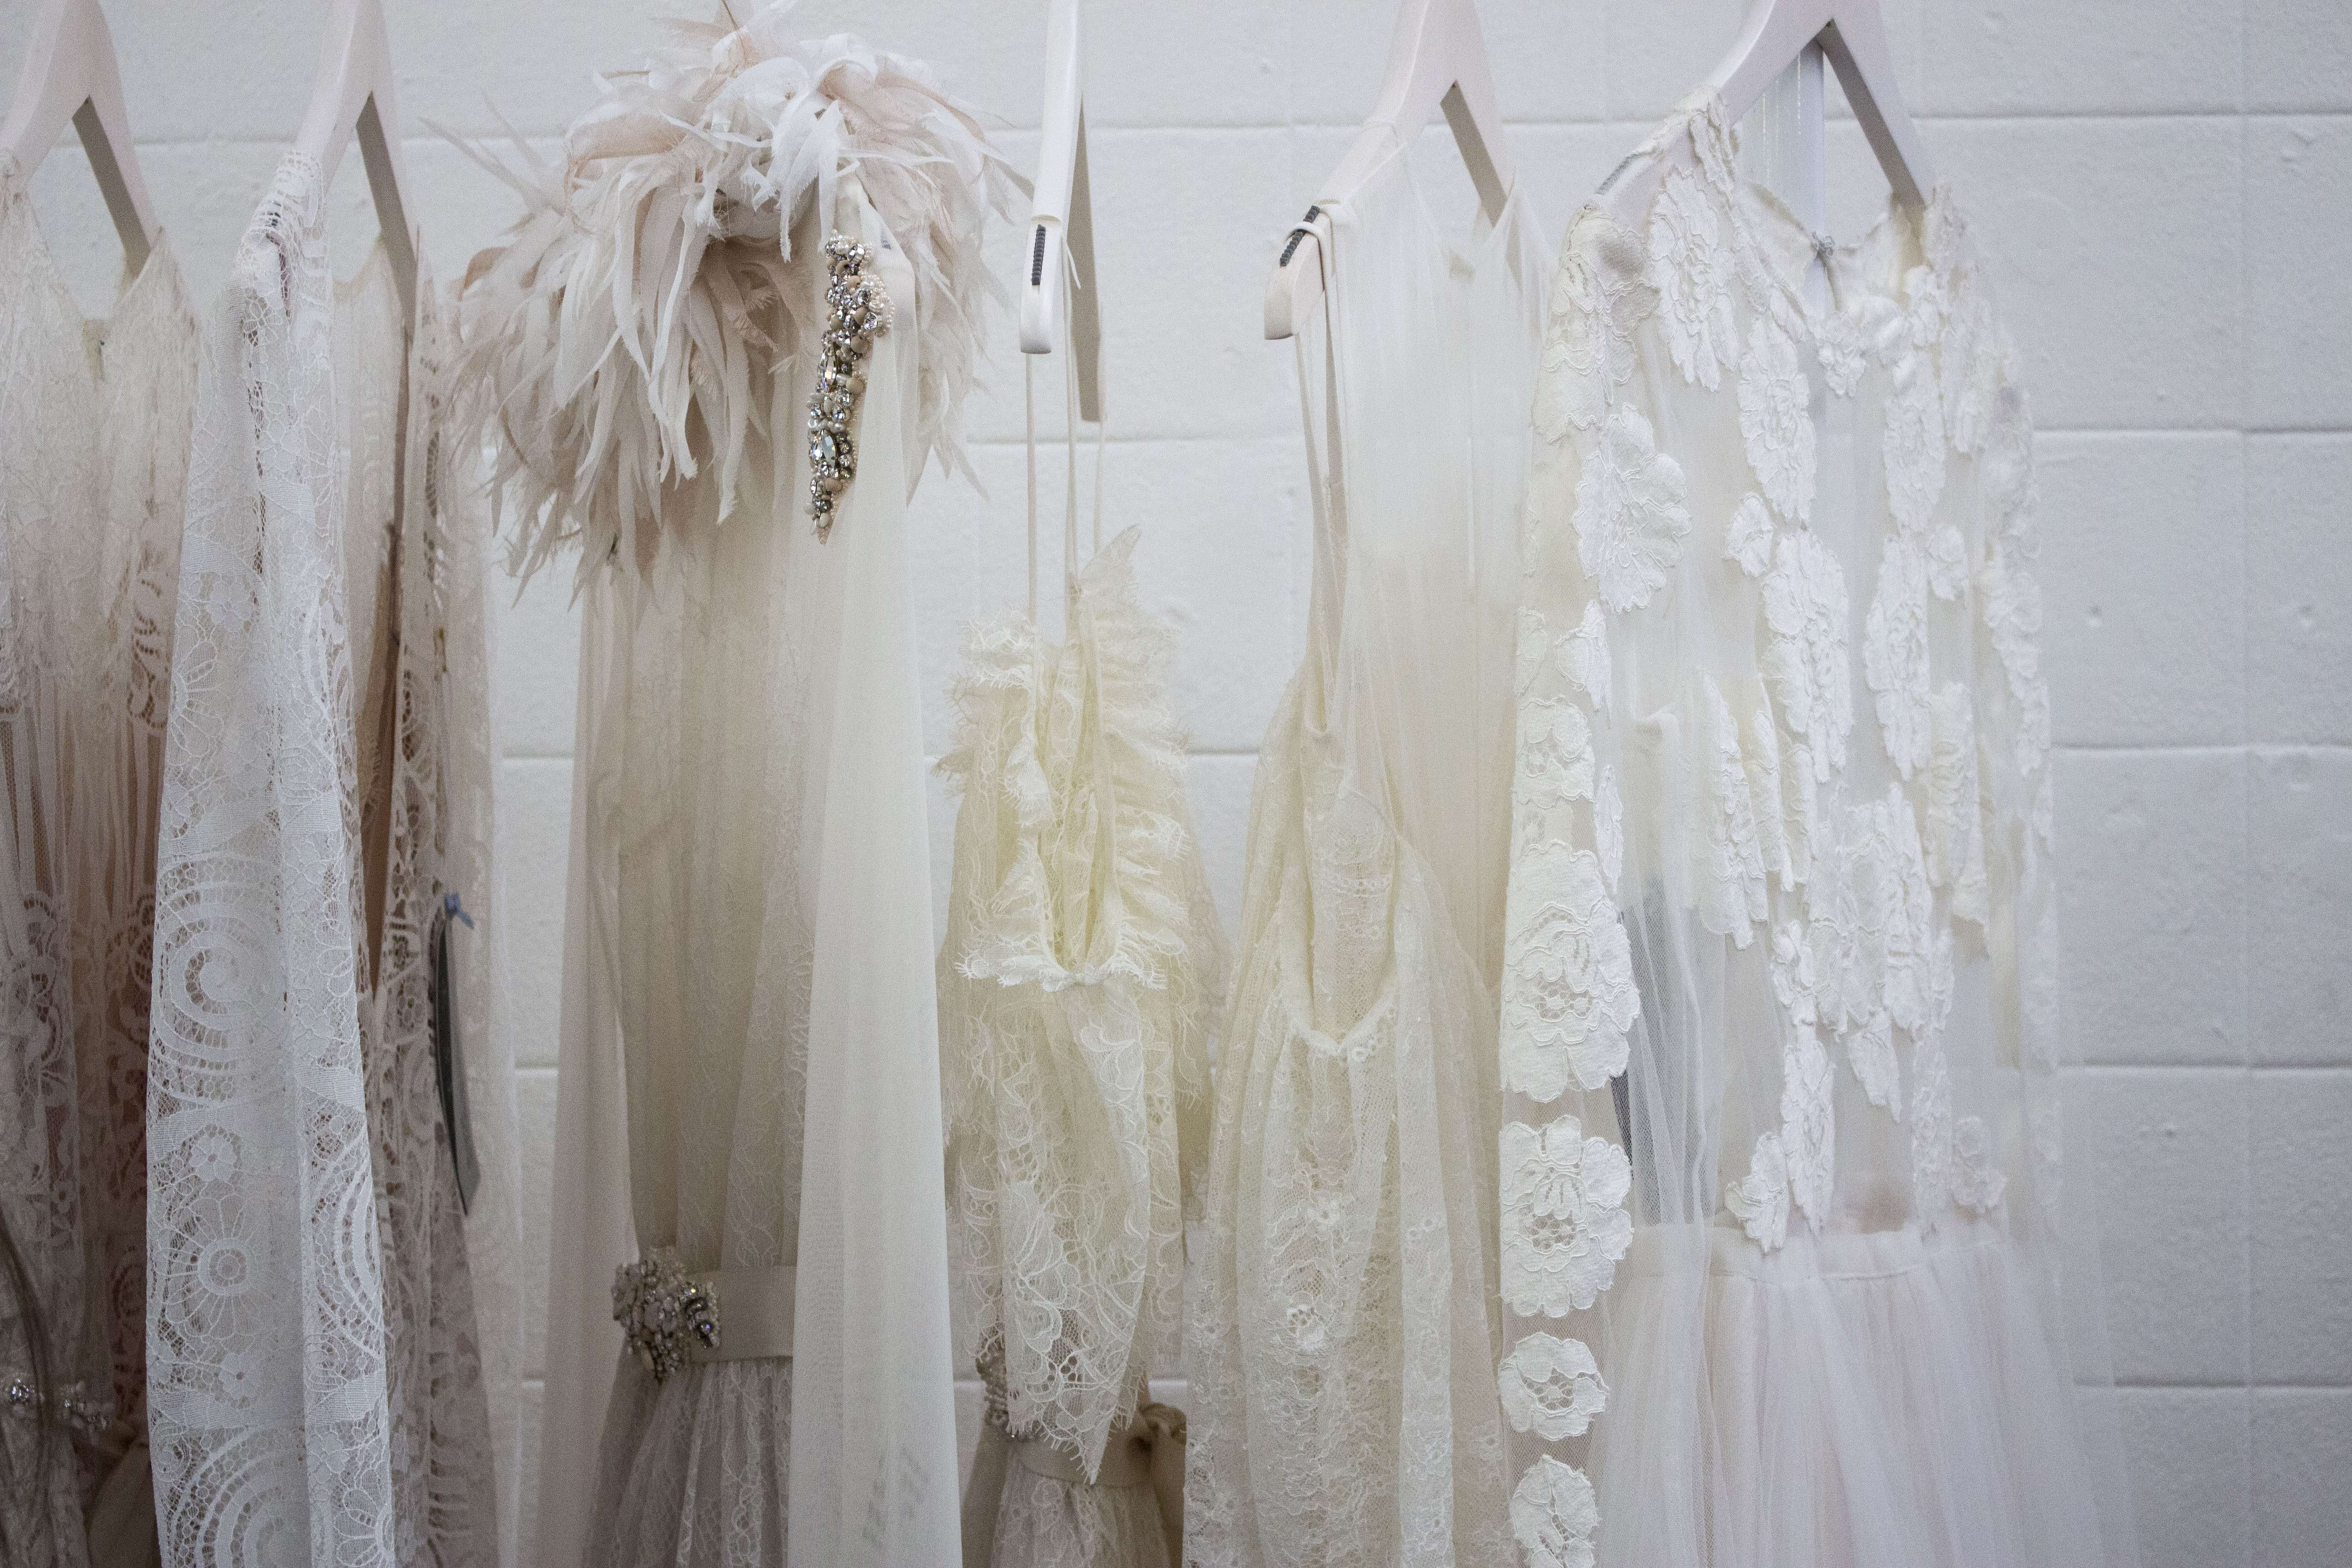 Thin wedding dresses hang in front of a white brick wall at Old Truman Brewery